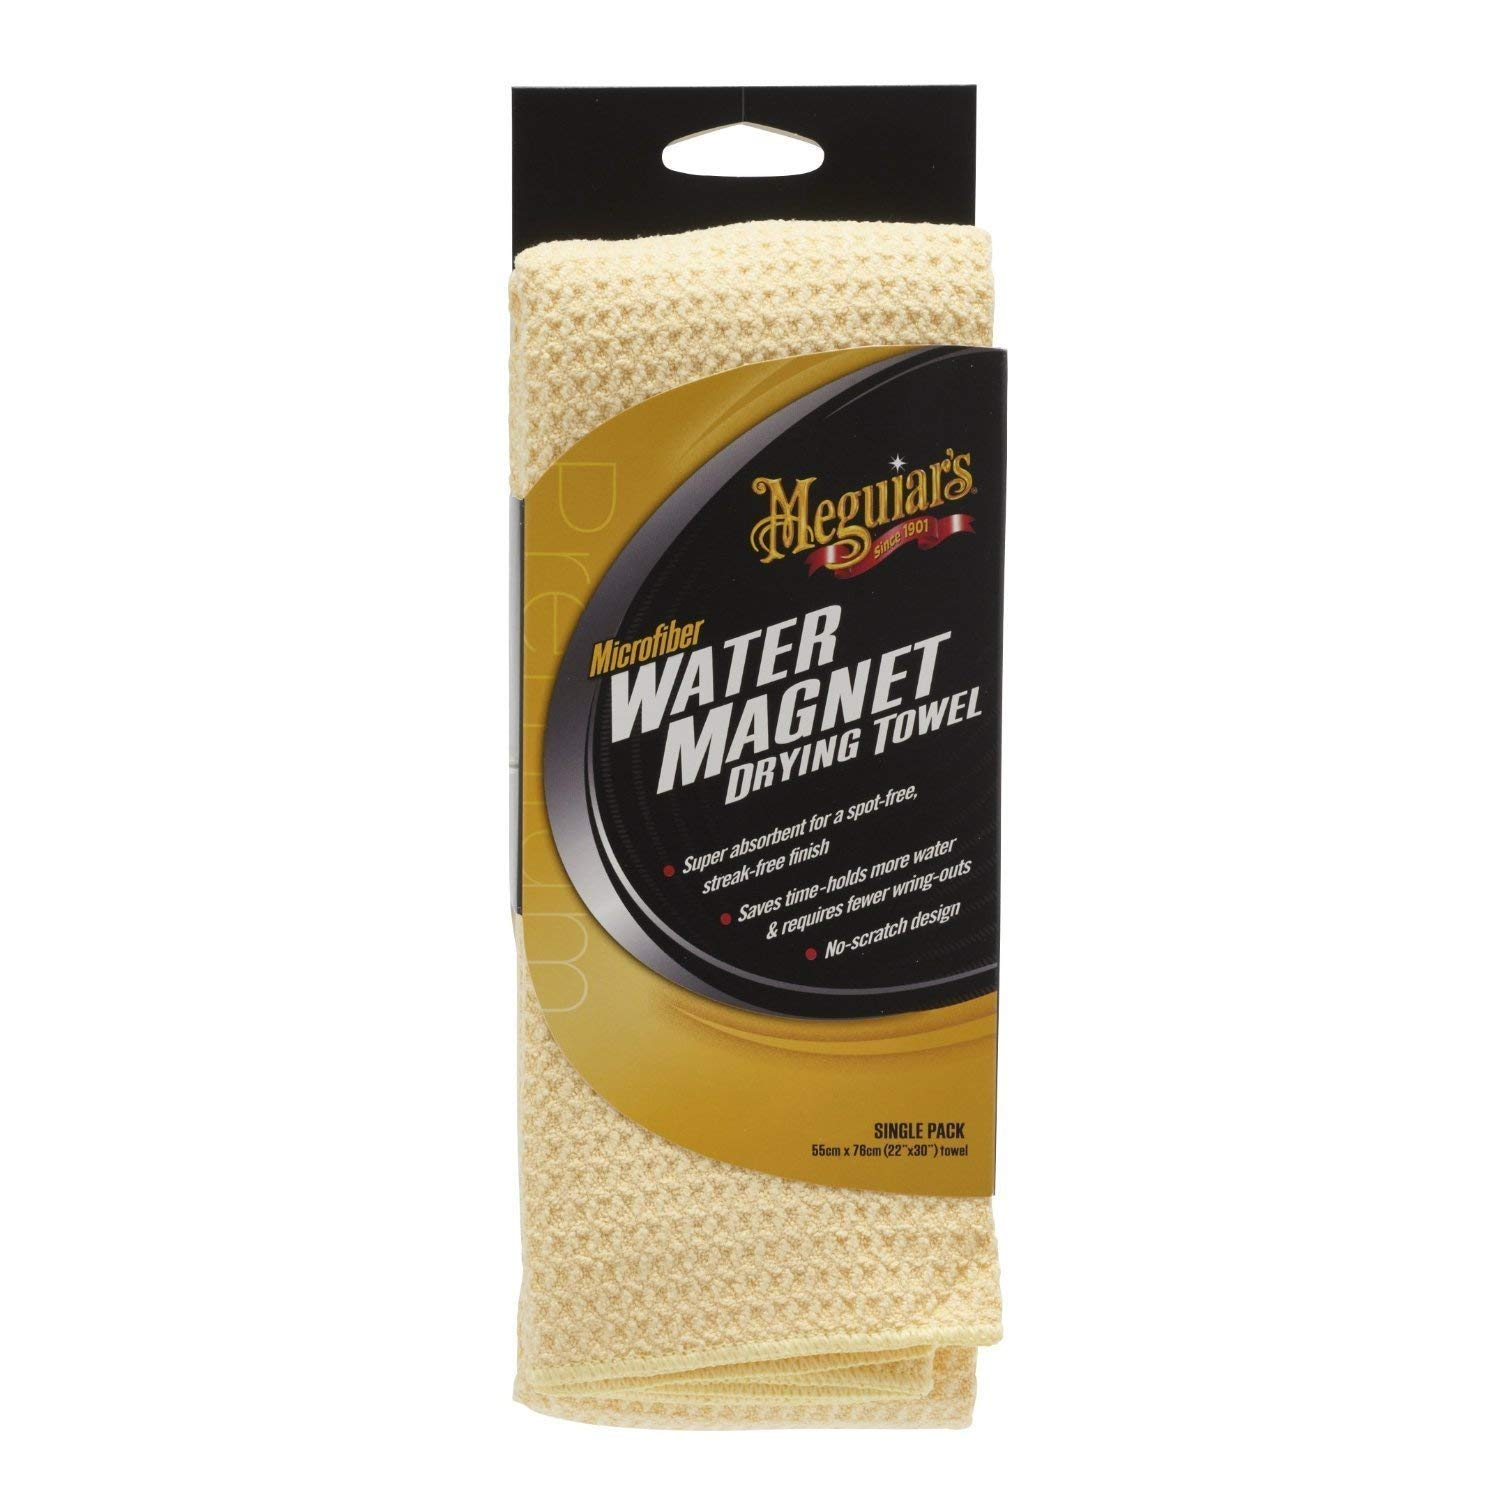 Meguiar's  X2000 Water Magnet Drying Towel (12 Pack)